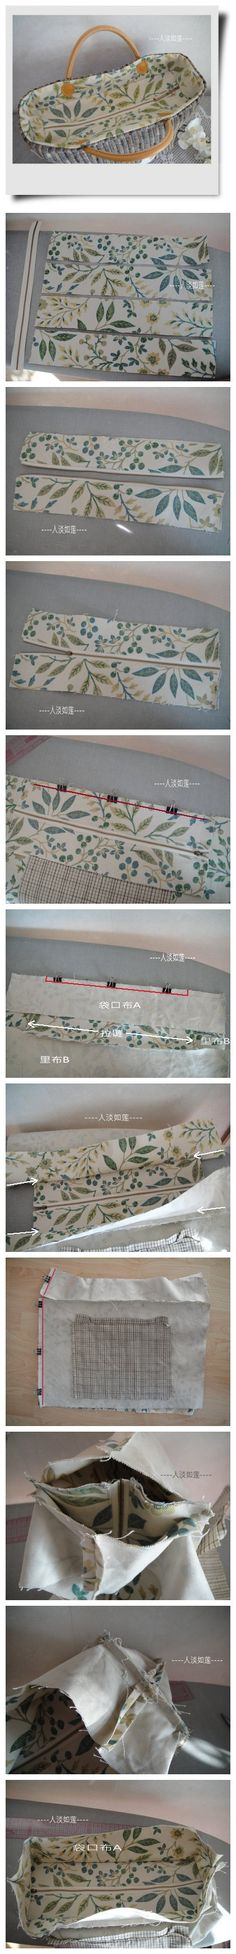 How to zipper on the bag there is no gap, it seems as if there is something to see to understand, will be able to learn hands-doing.